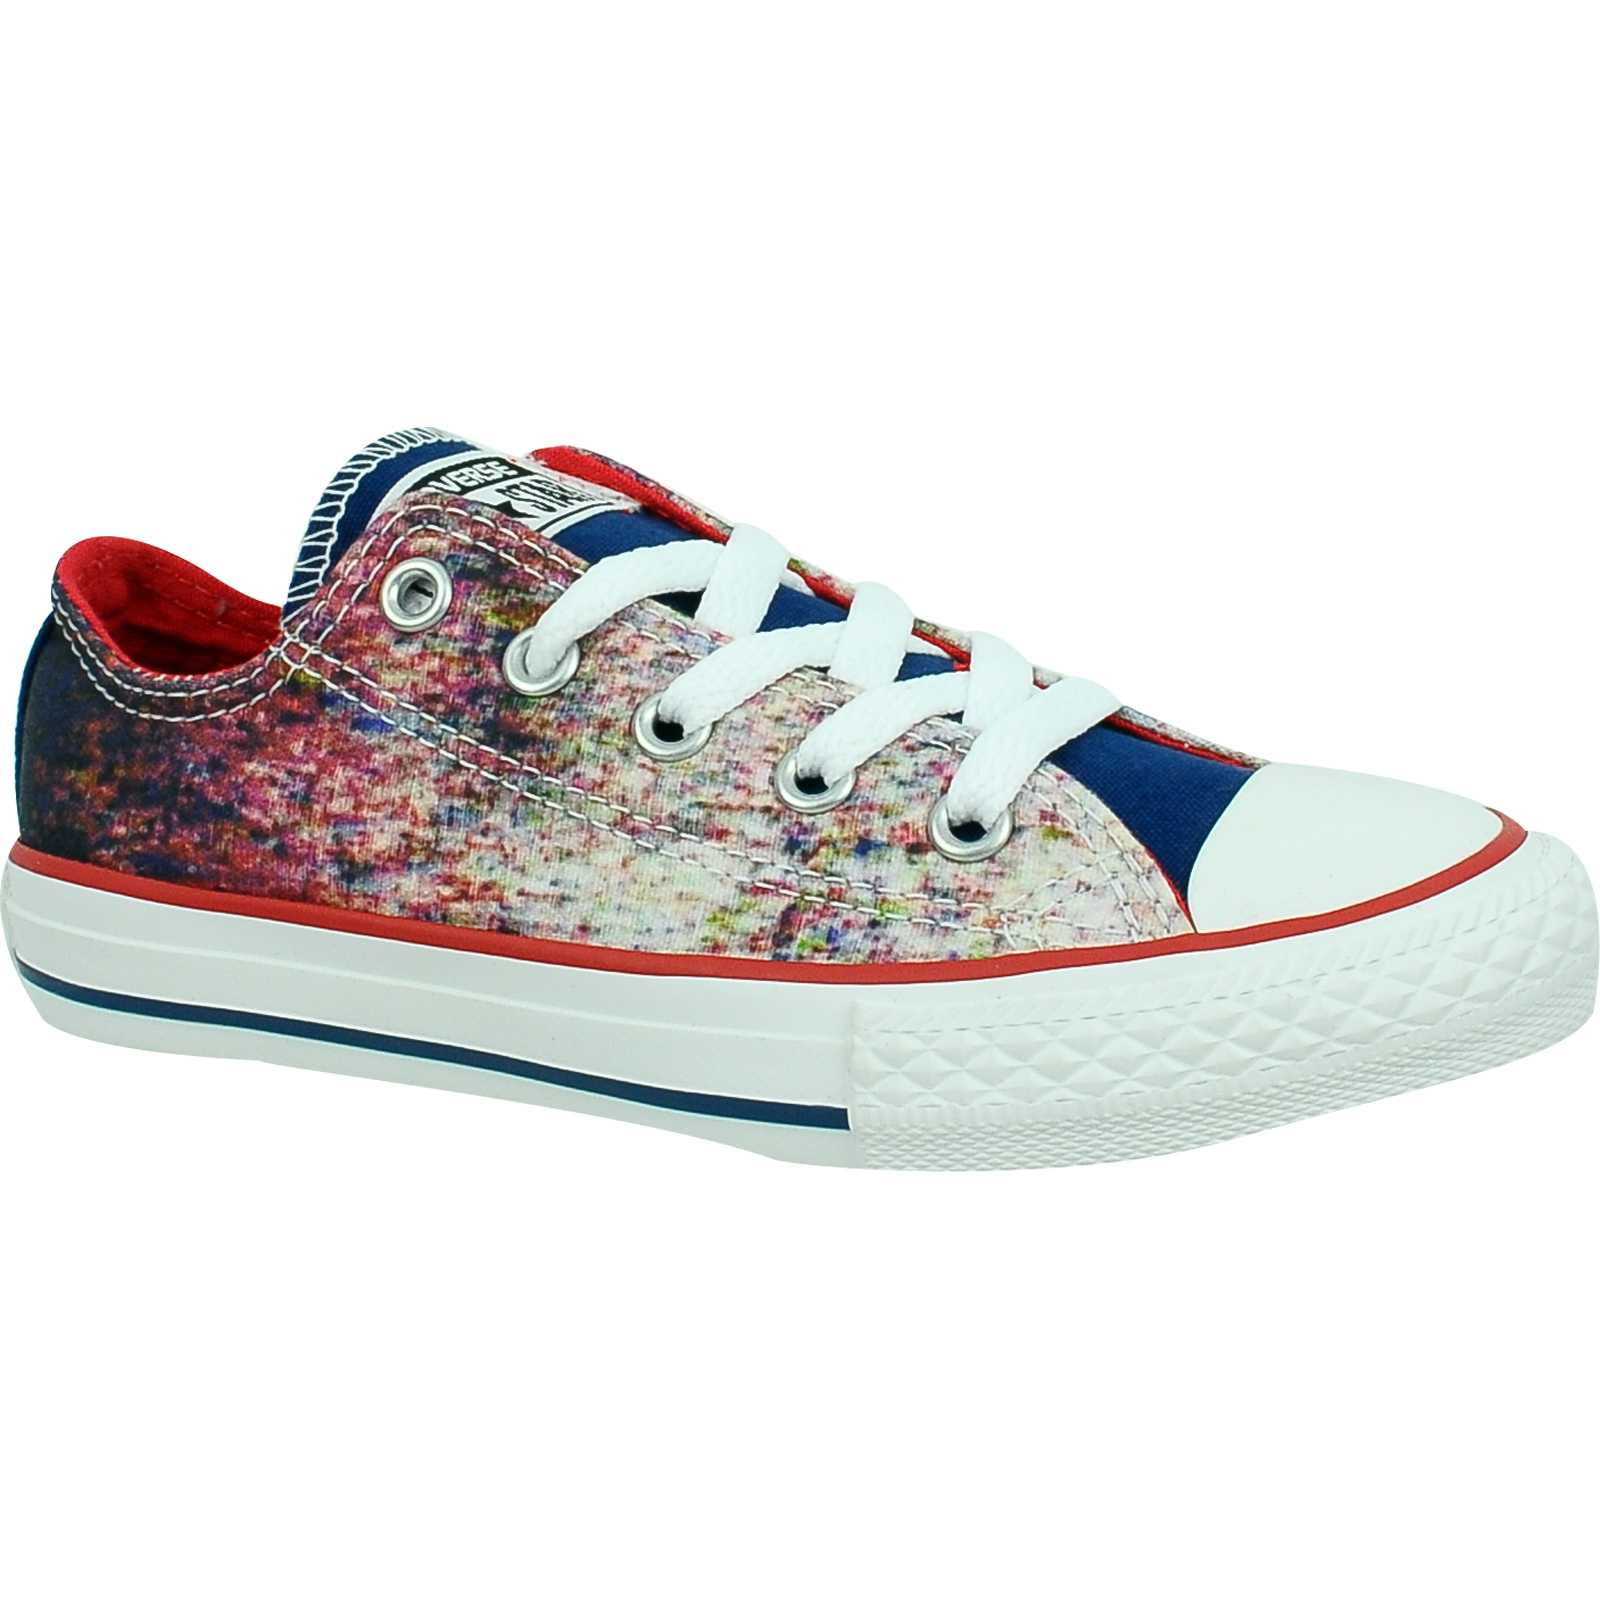 Tenisi copii Converse Chuck Taylor All Star OX 647644C